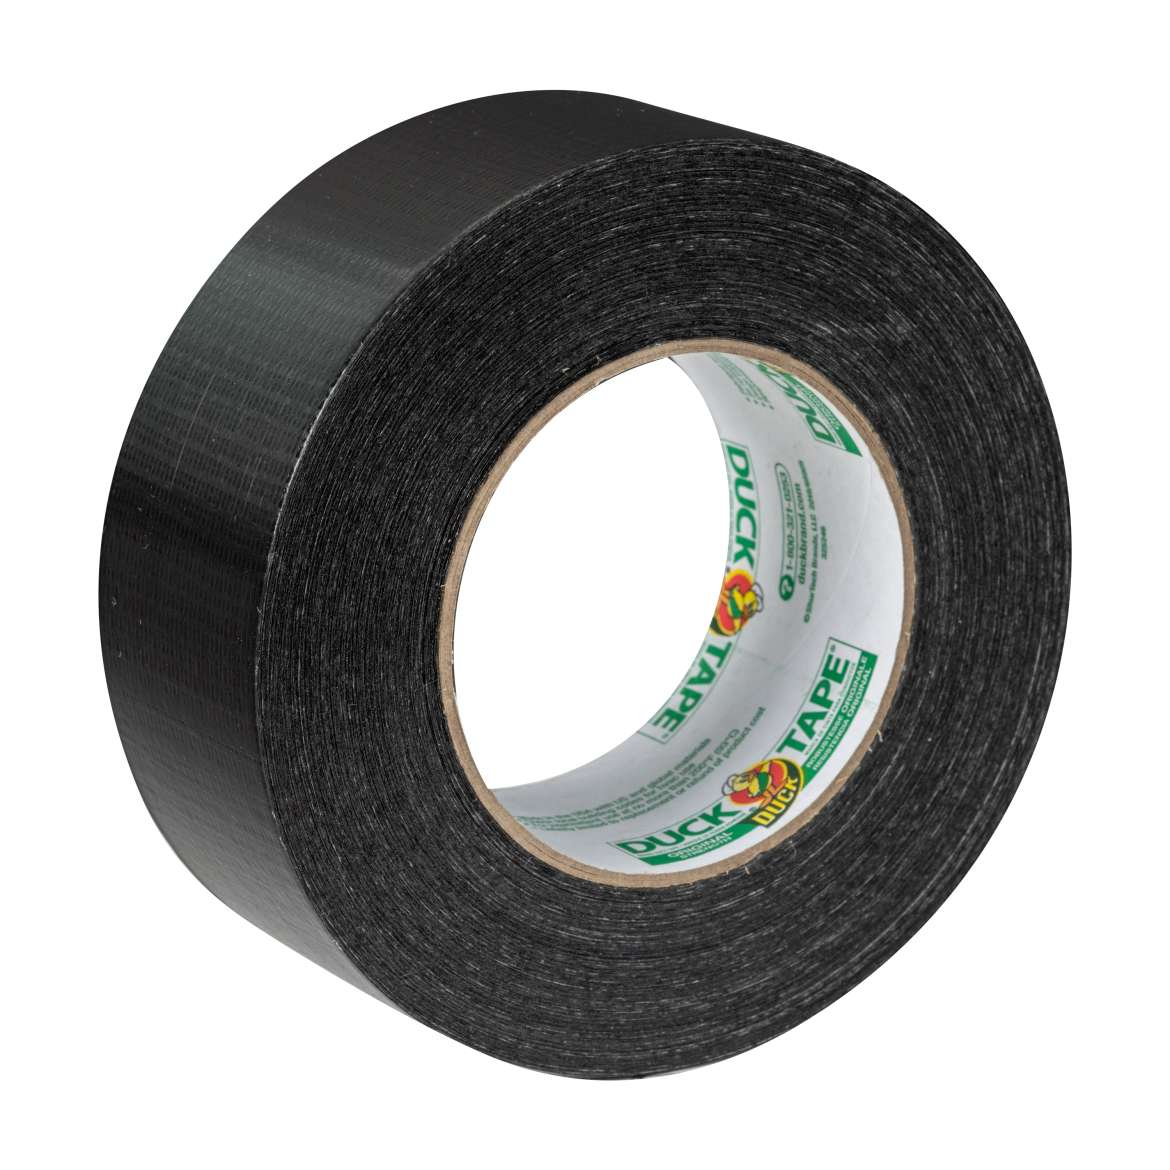 The Original Strength Duck Tape® Brand Duct Tape